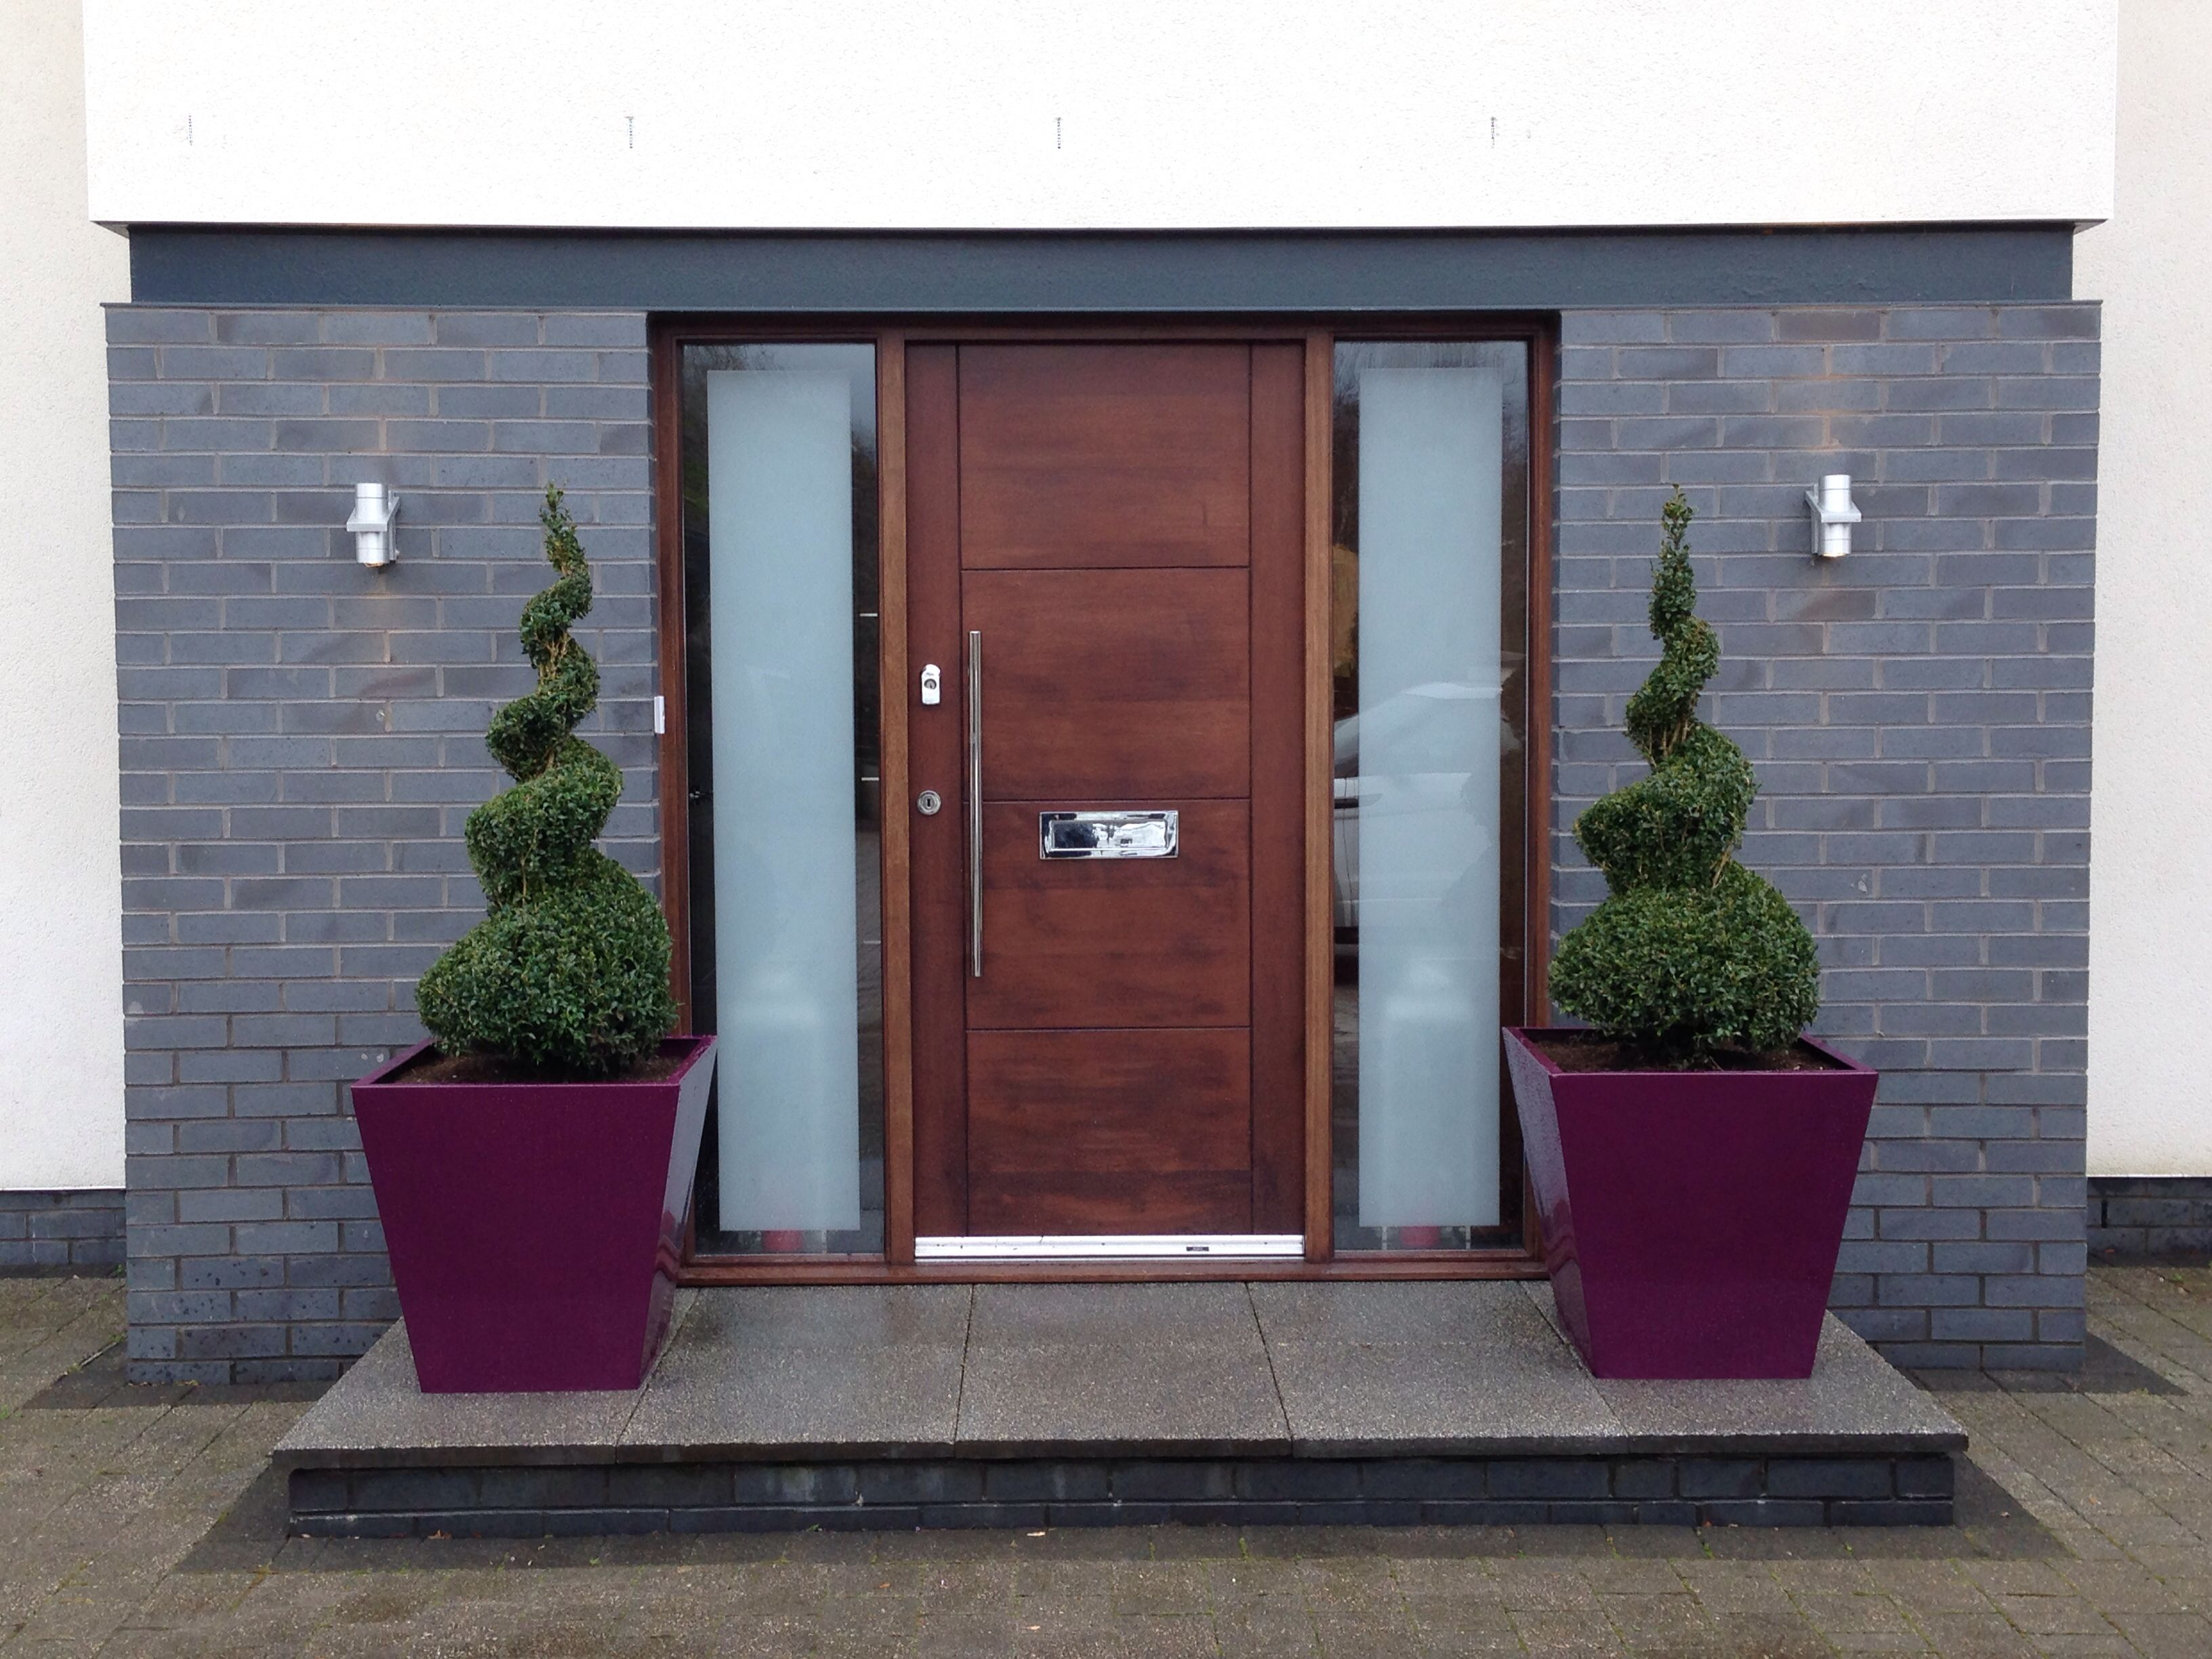 tile wood home custom outdoor planters door mouldings wonderful designs for front lap traditional plus ideas entry cool with oak mat black and pots flooring siding design decoration accessories plant your also planter